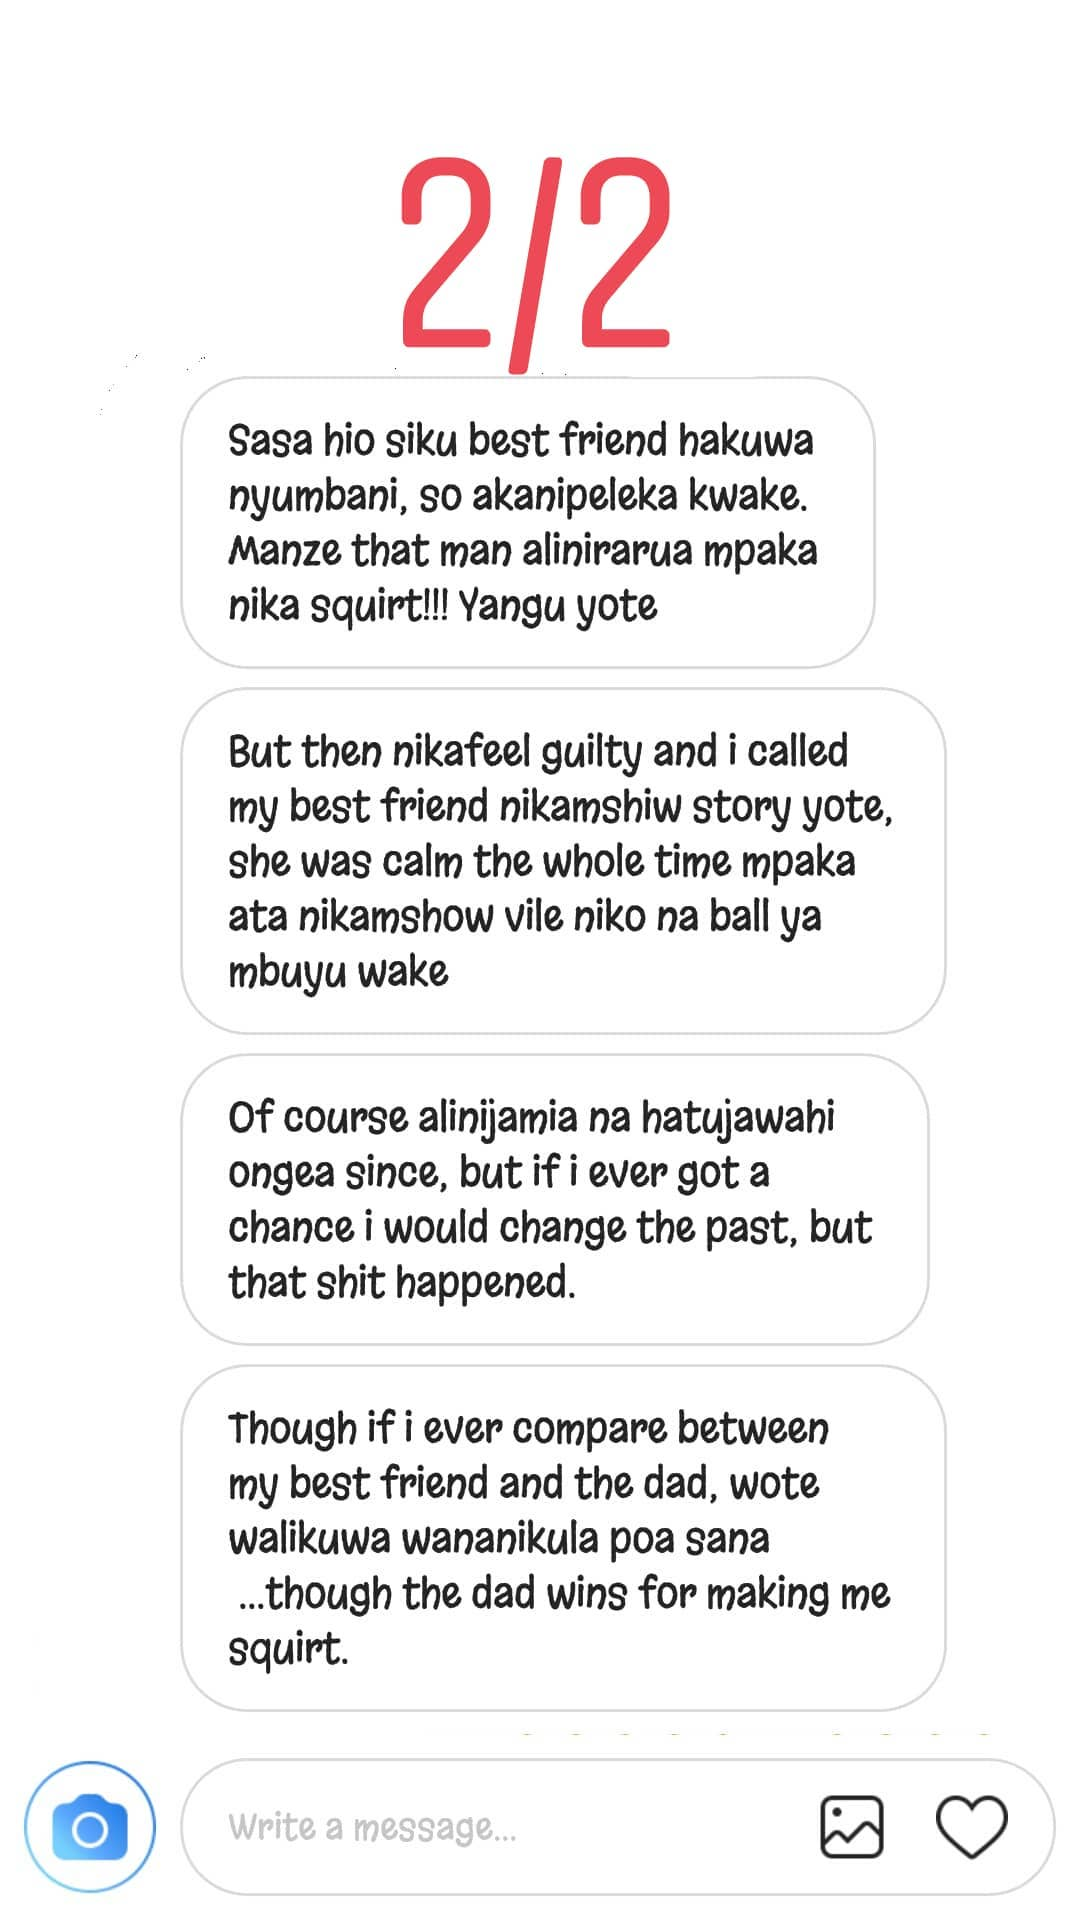 women 226 - 'I smashed my girlfriend's sister and she tasted better,' Kenyans talk about cheating